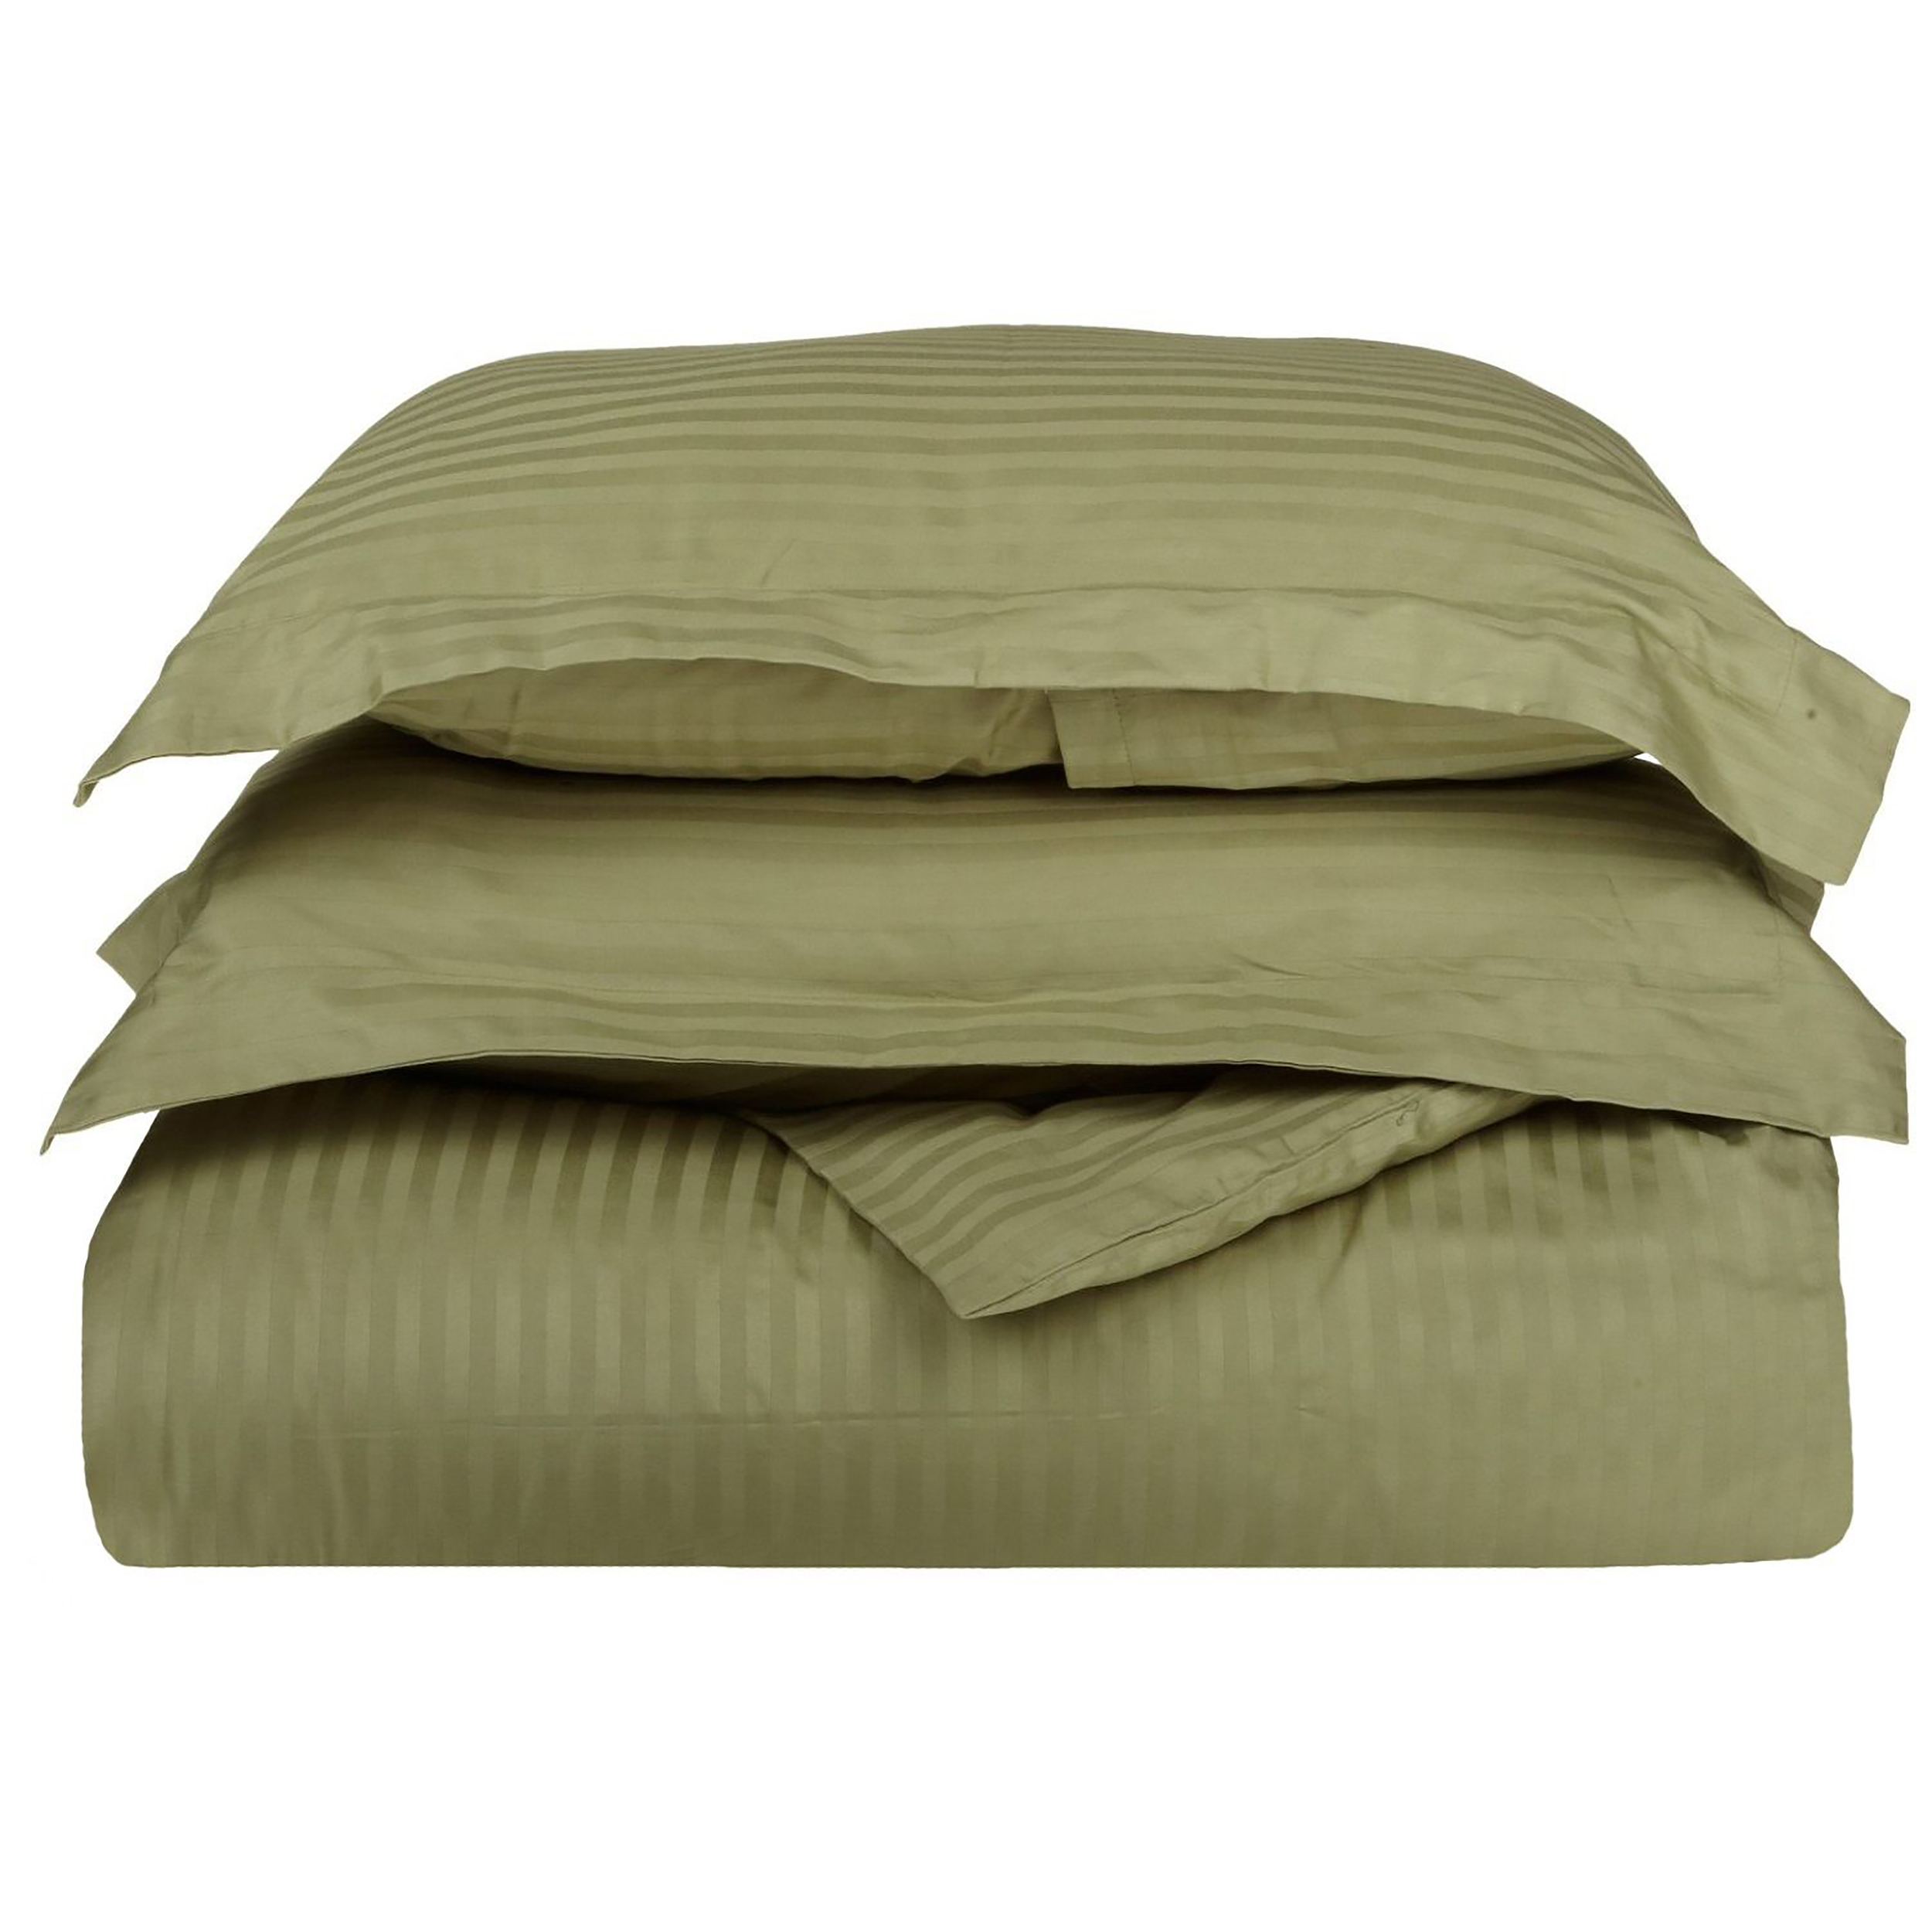 Superior 400 Thread Count 100% Premium Combed Cotton Stripe Duvet Cover Set